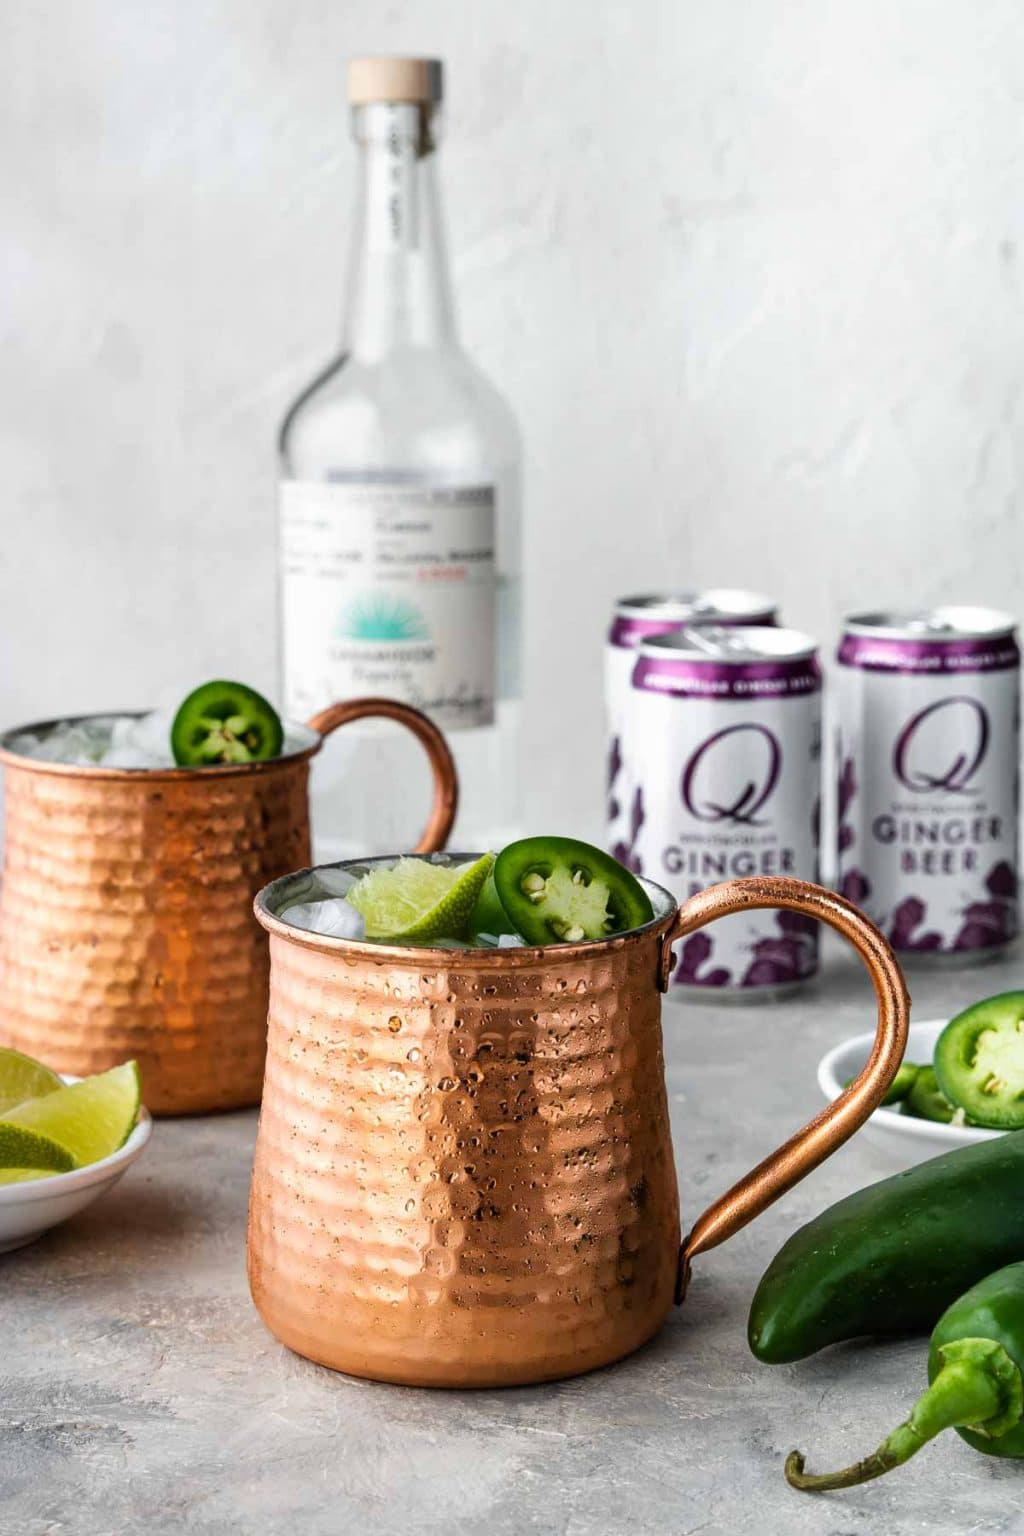 Tequila Moscow Mule in a copper mug with a bottle of tequila, jalapenos and ginger beer